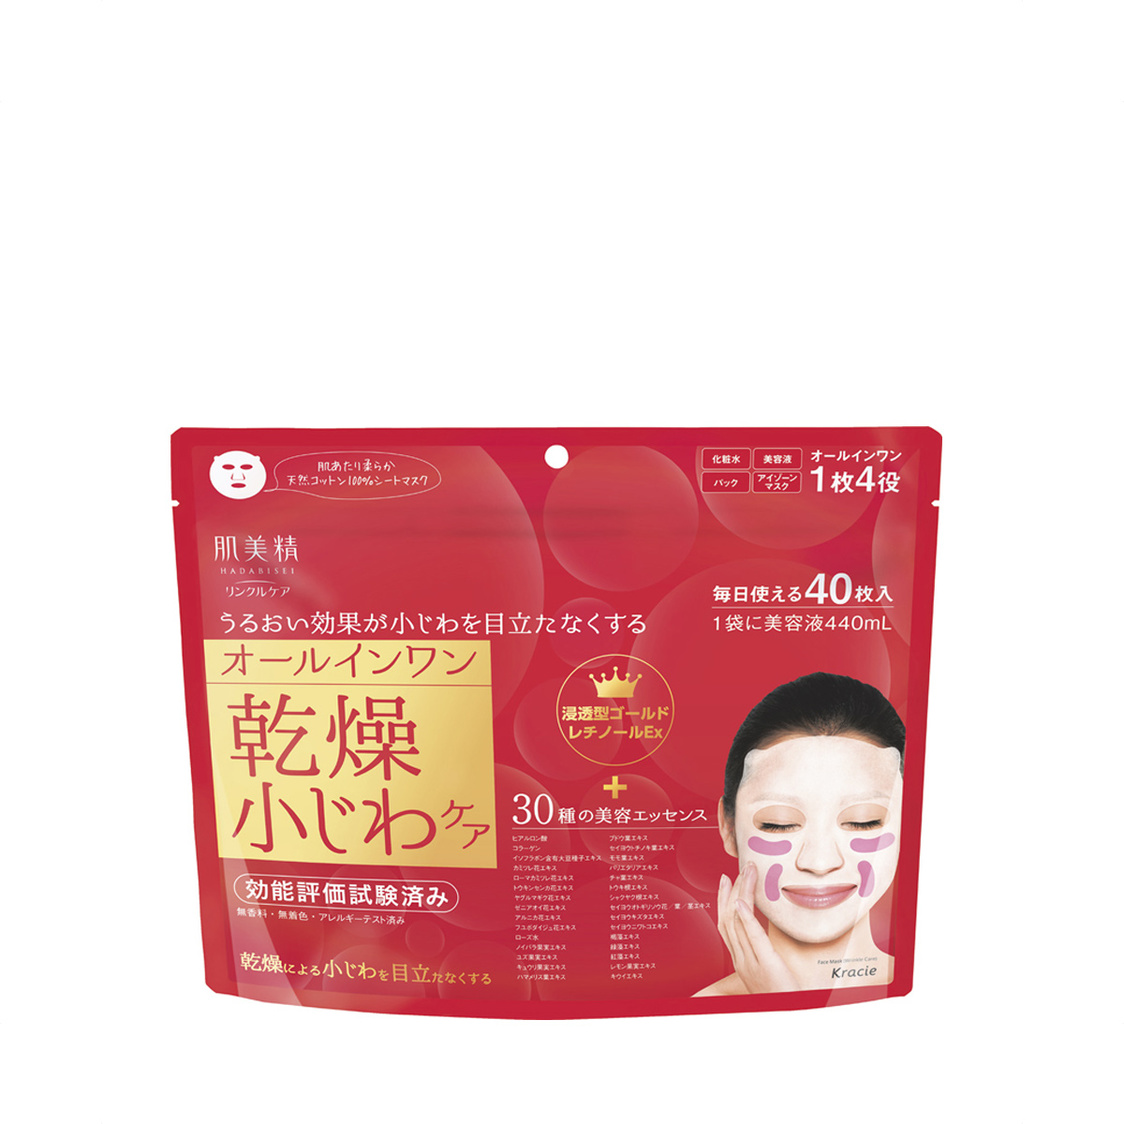 Face Mask Wrinkle Care 40 Pieces